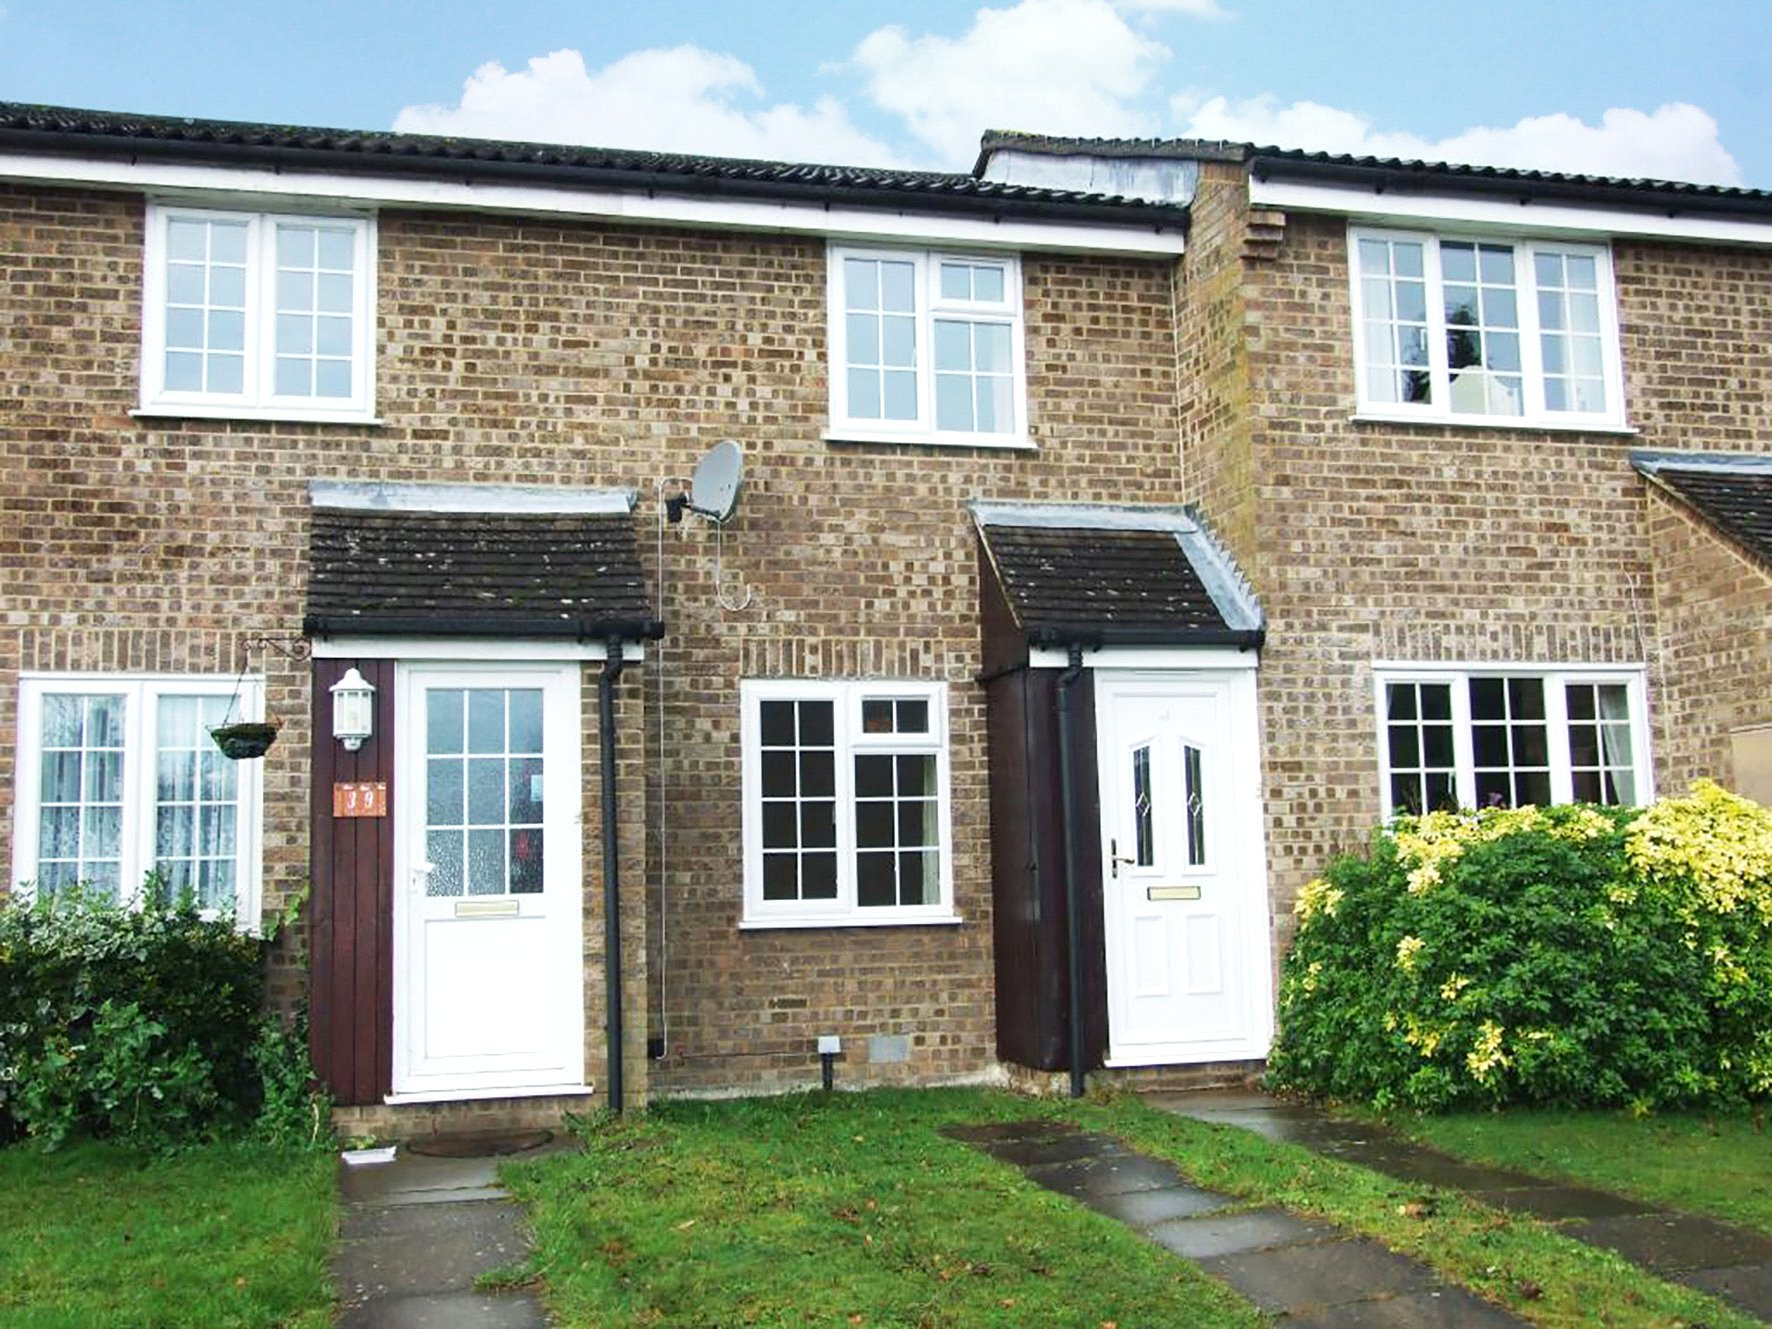 2 Bedrooms Terraced House for sale in Crofton Close, Forest Park, Bracknell, Berkshire, RG12